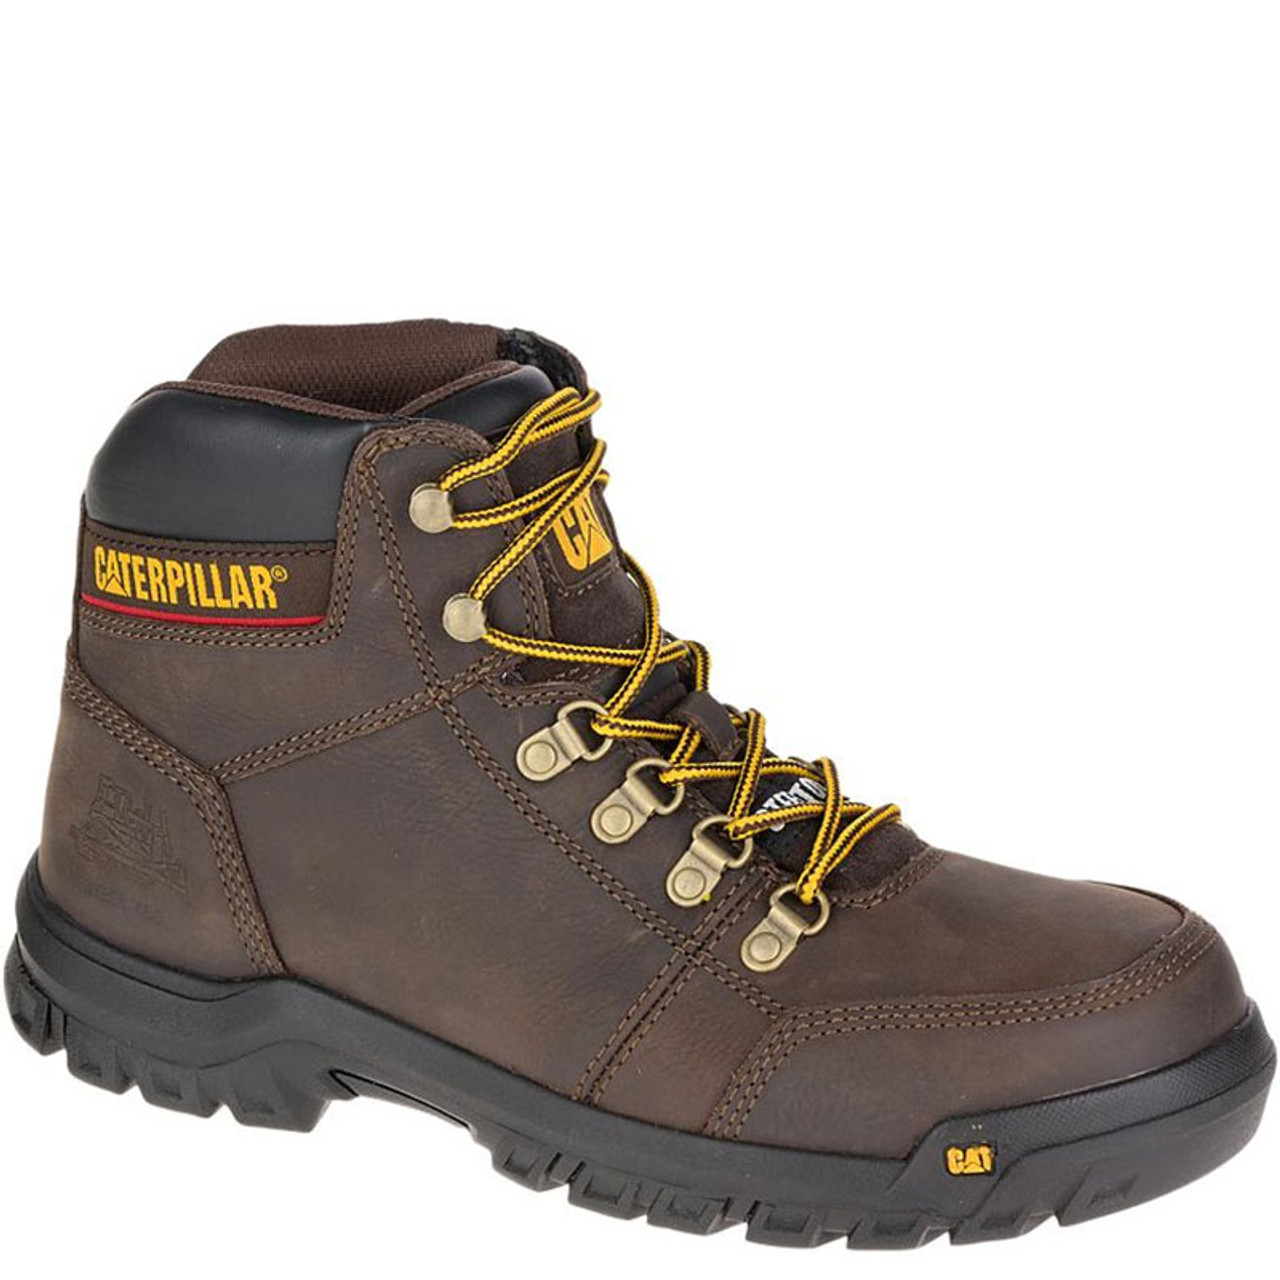 61728d0461c1 CAT P90803 OUTLINE Steel Toe Non-Insulated Brown Work Boots - Family  Footwear Center